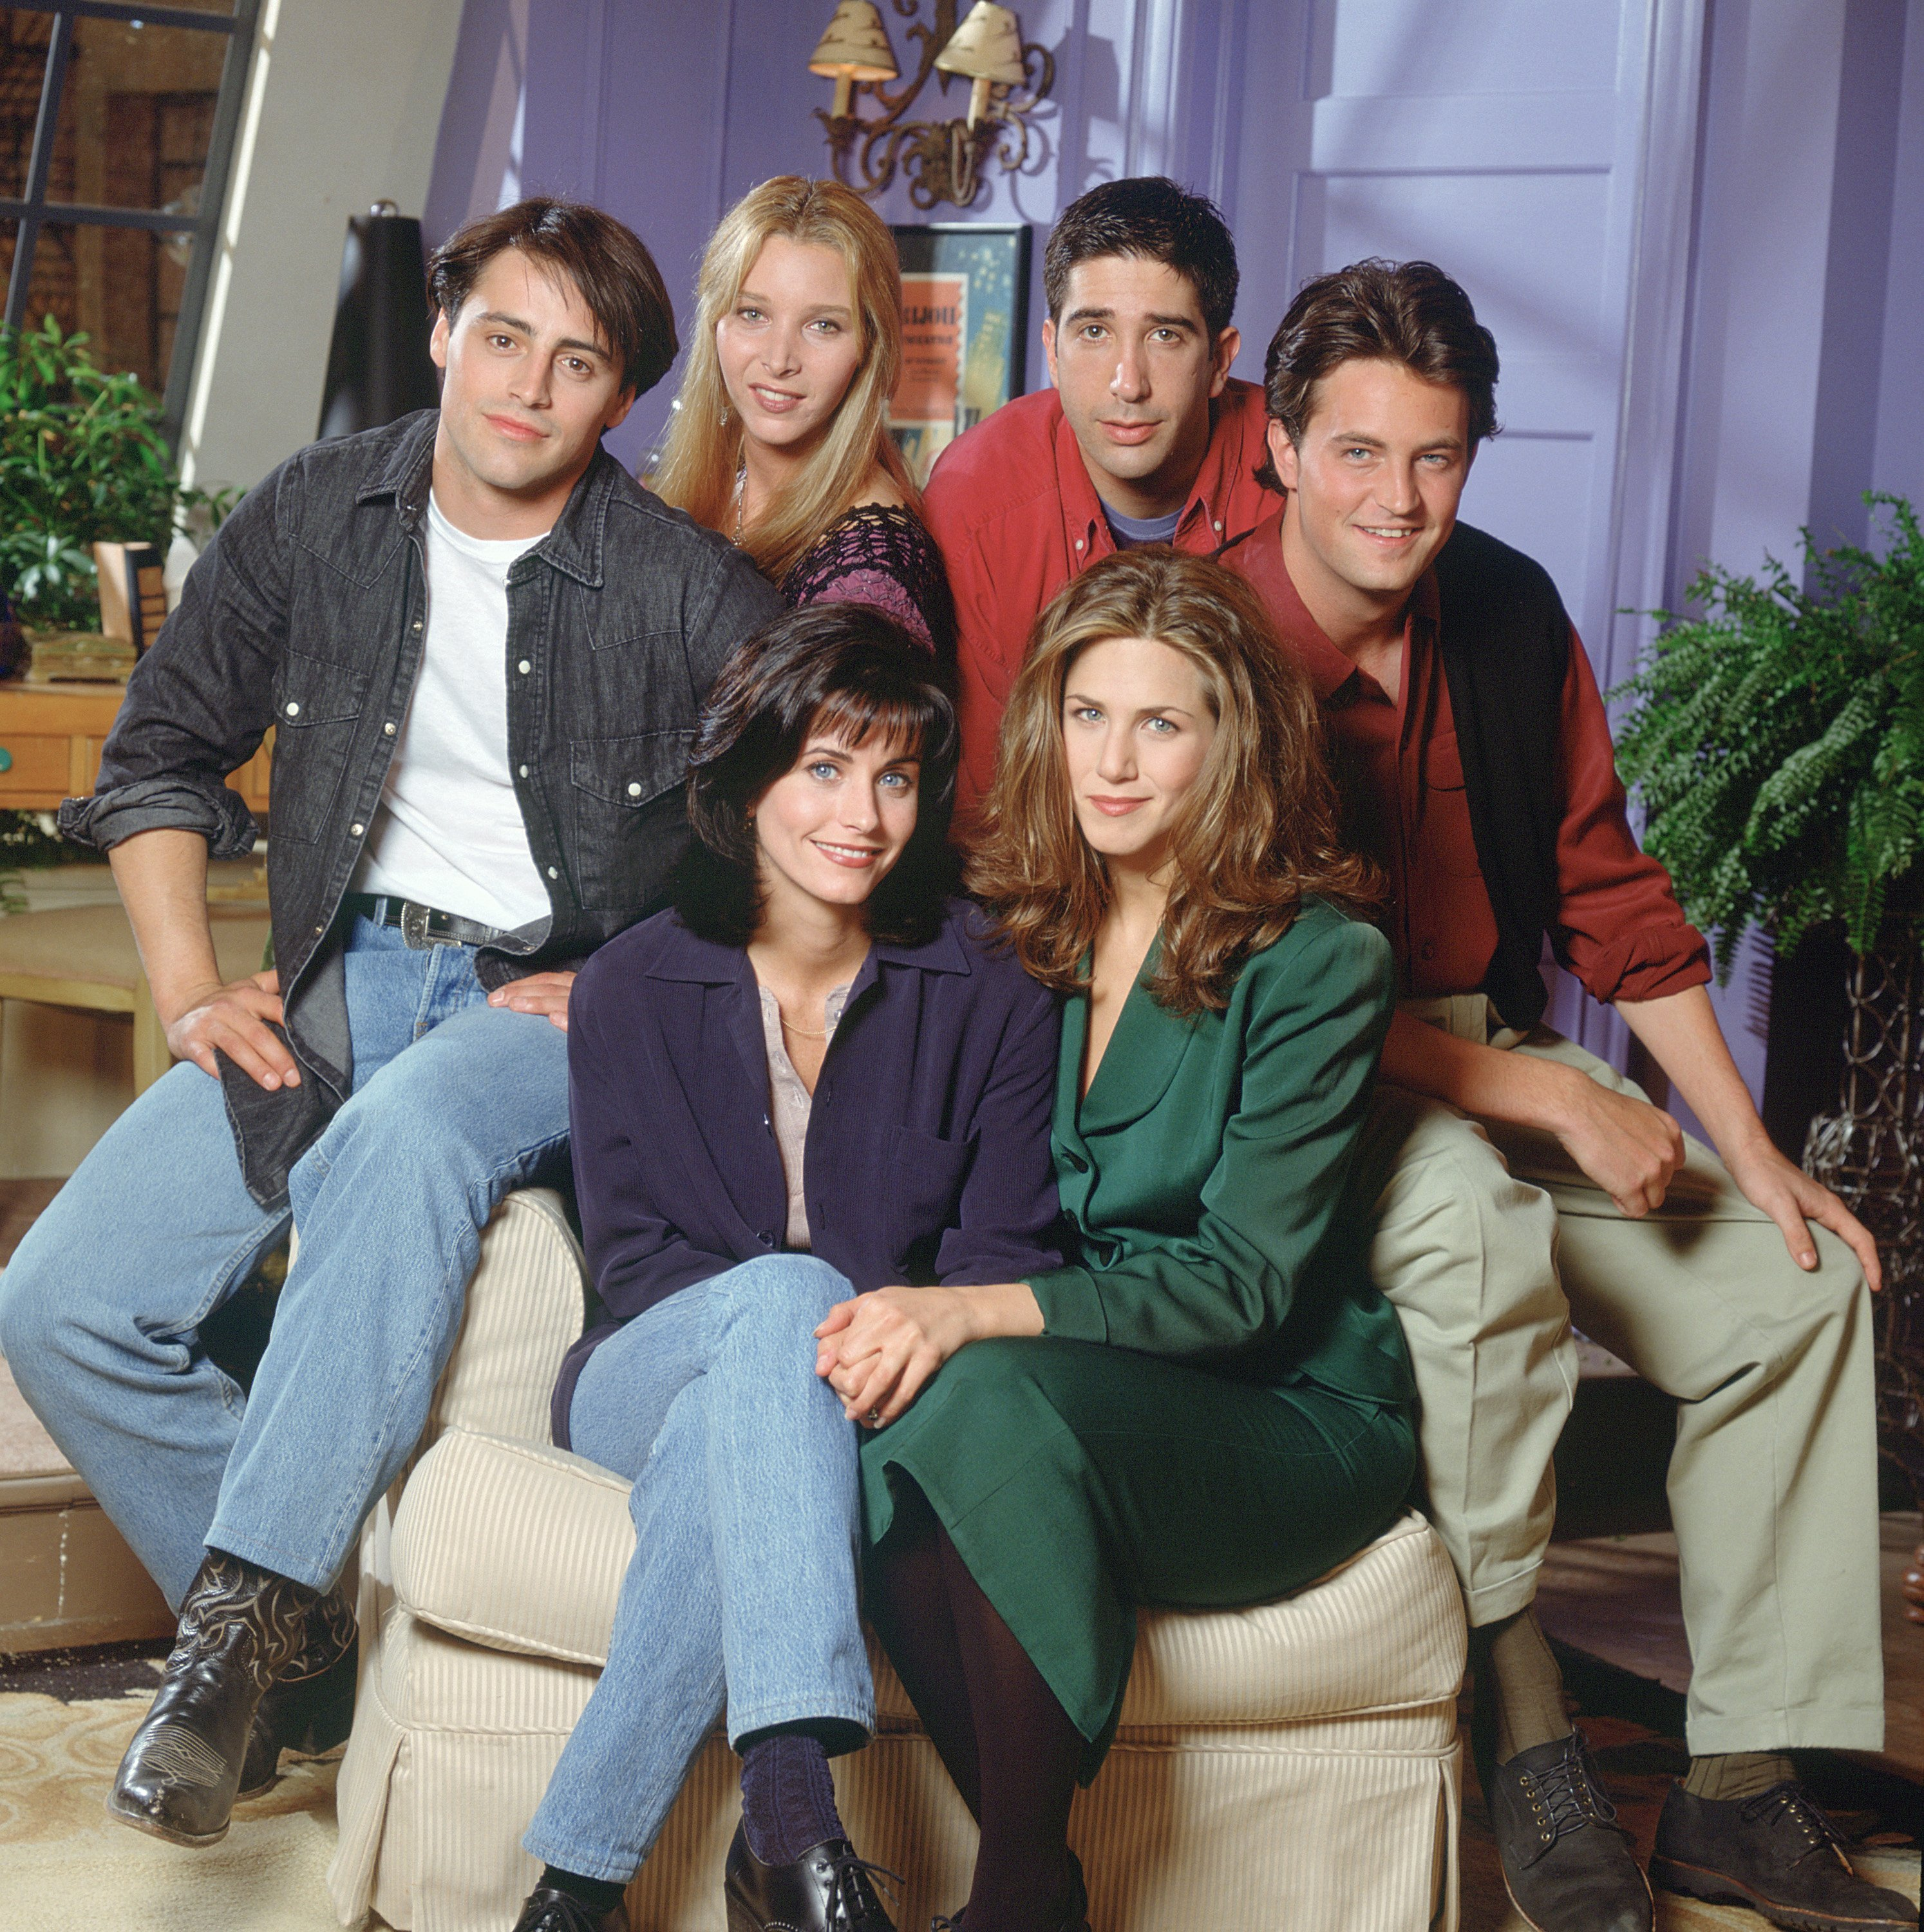 The cast of friendss - Courteney Cox as Monica Geller, Matt LeBlanc as Joey Tribbiani, Lisa Kudrow as Phoebe Buffay, David Schwimmer as Ross Geller, Matthew Perry as Chandler Bing and Jennifer Aniston as Rachel Green | Photo: Photo by Reisig & Taylor/NBCU Photo Bank/NBCUniversal via Getty Images via Getty Images